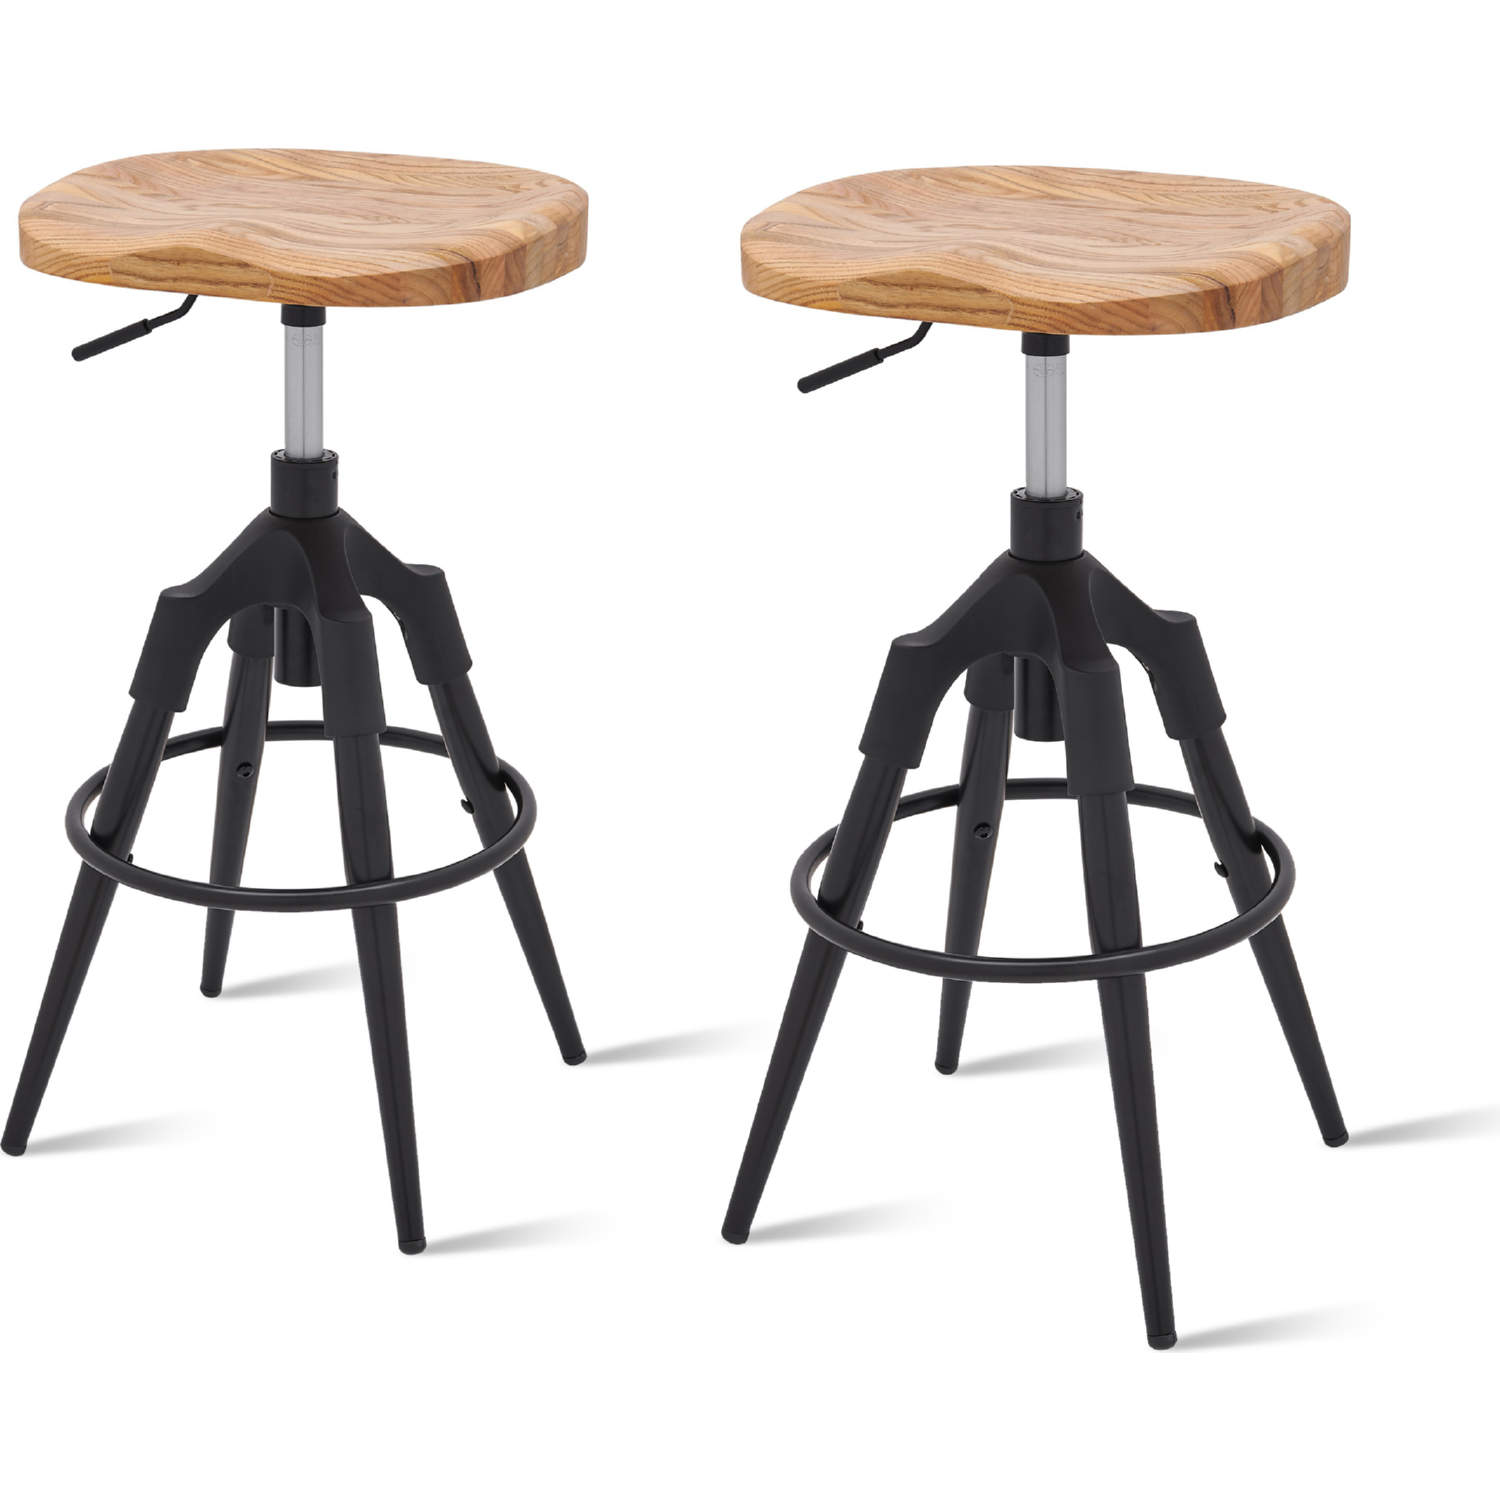 Miraculous Elton Swivel Backless Bar Stool In Wood Black Steel Set Of 2 By New Pacific Direct Pabps2019 Chair Design Images Pabps2019Com